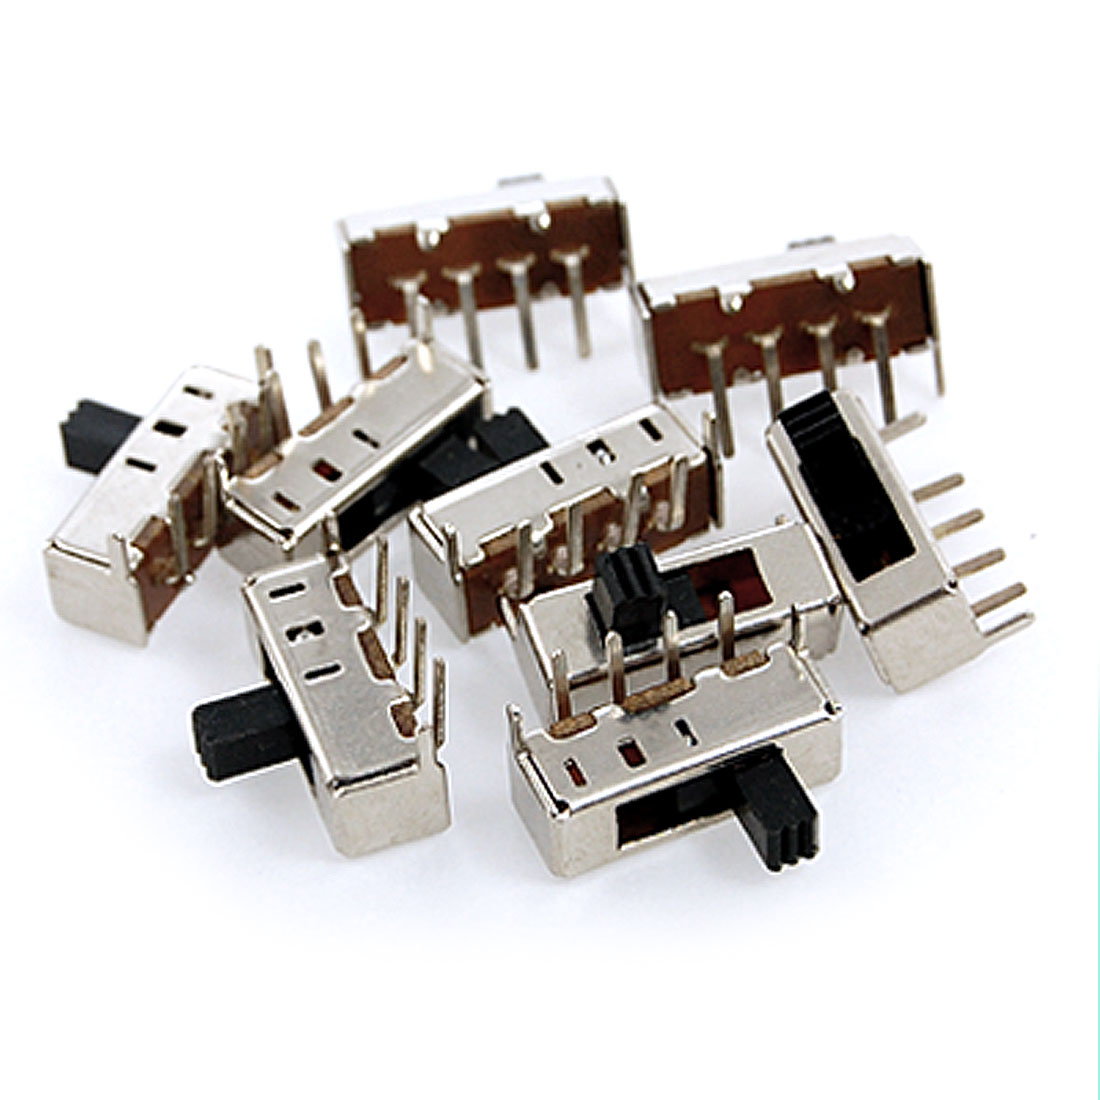 10 Pcs x Panel PCB 4 Pin 3 Position 1P3T SP3T Slide Switch Side Knob 0.5A 50V DC